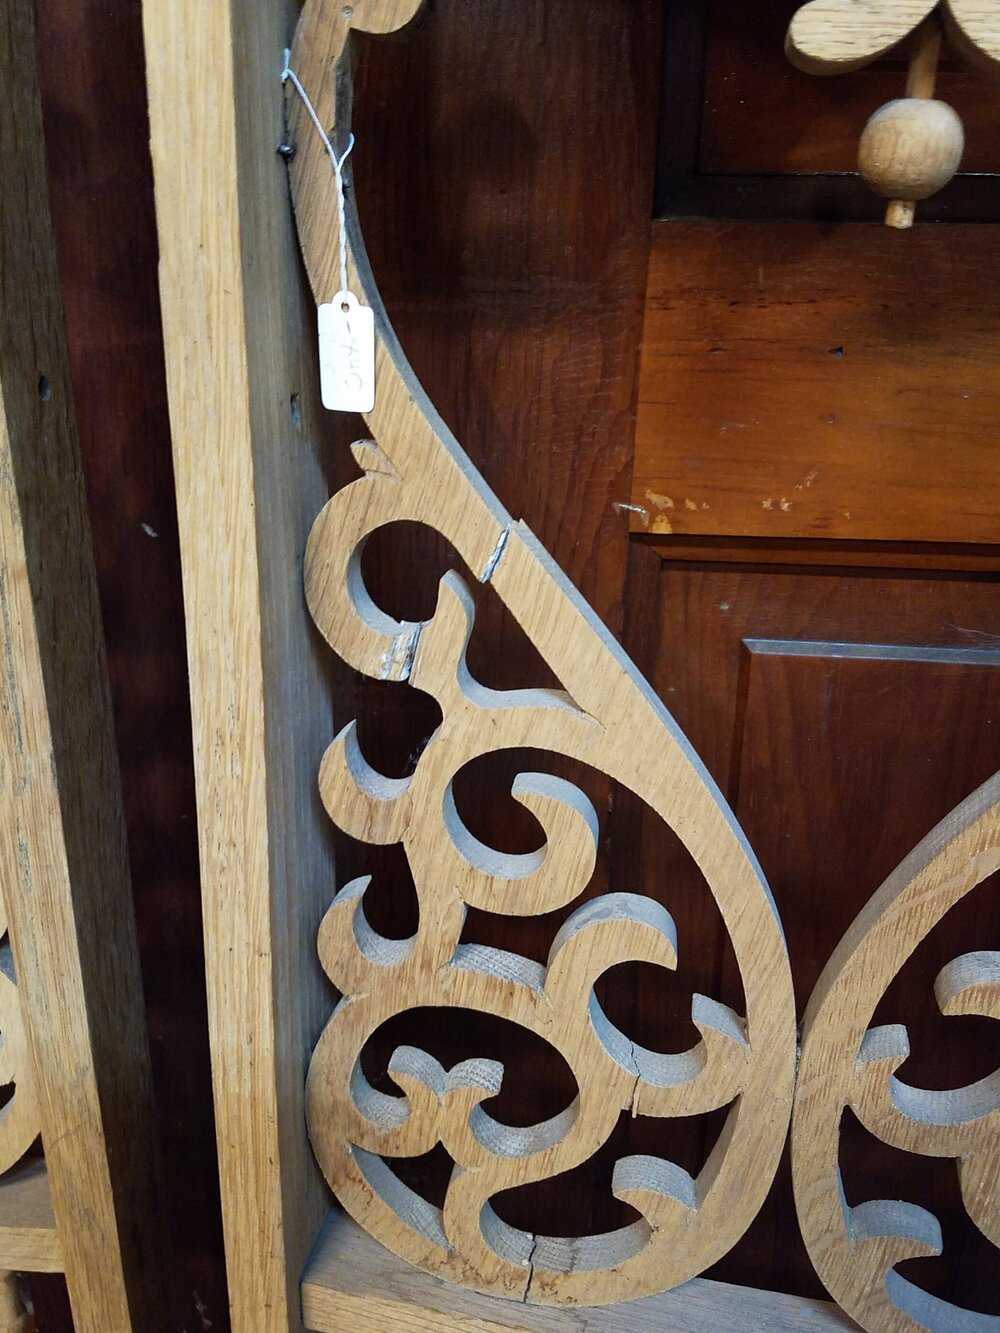 architectural salvage fretwork Set of 5 small wooden spindles